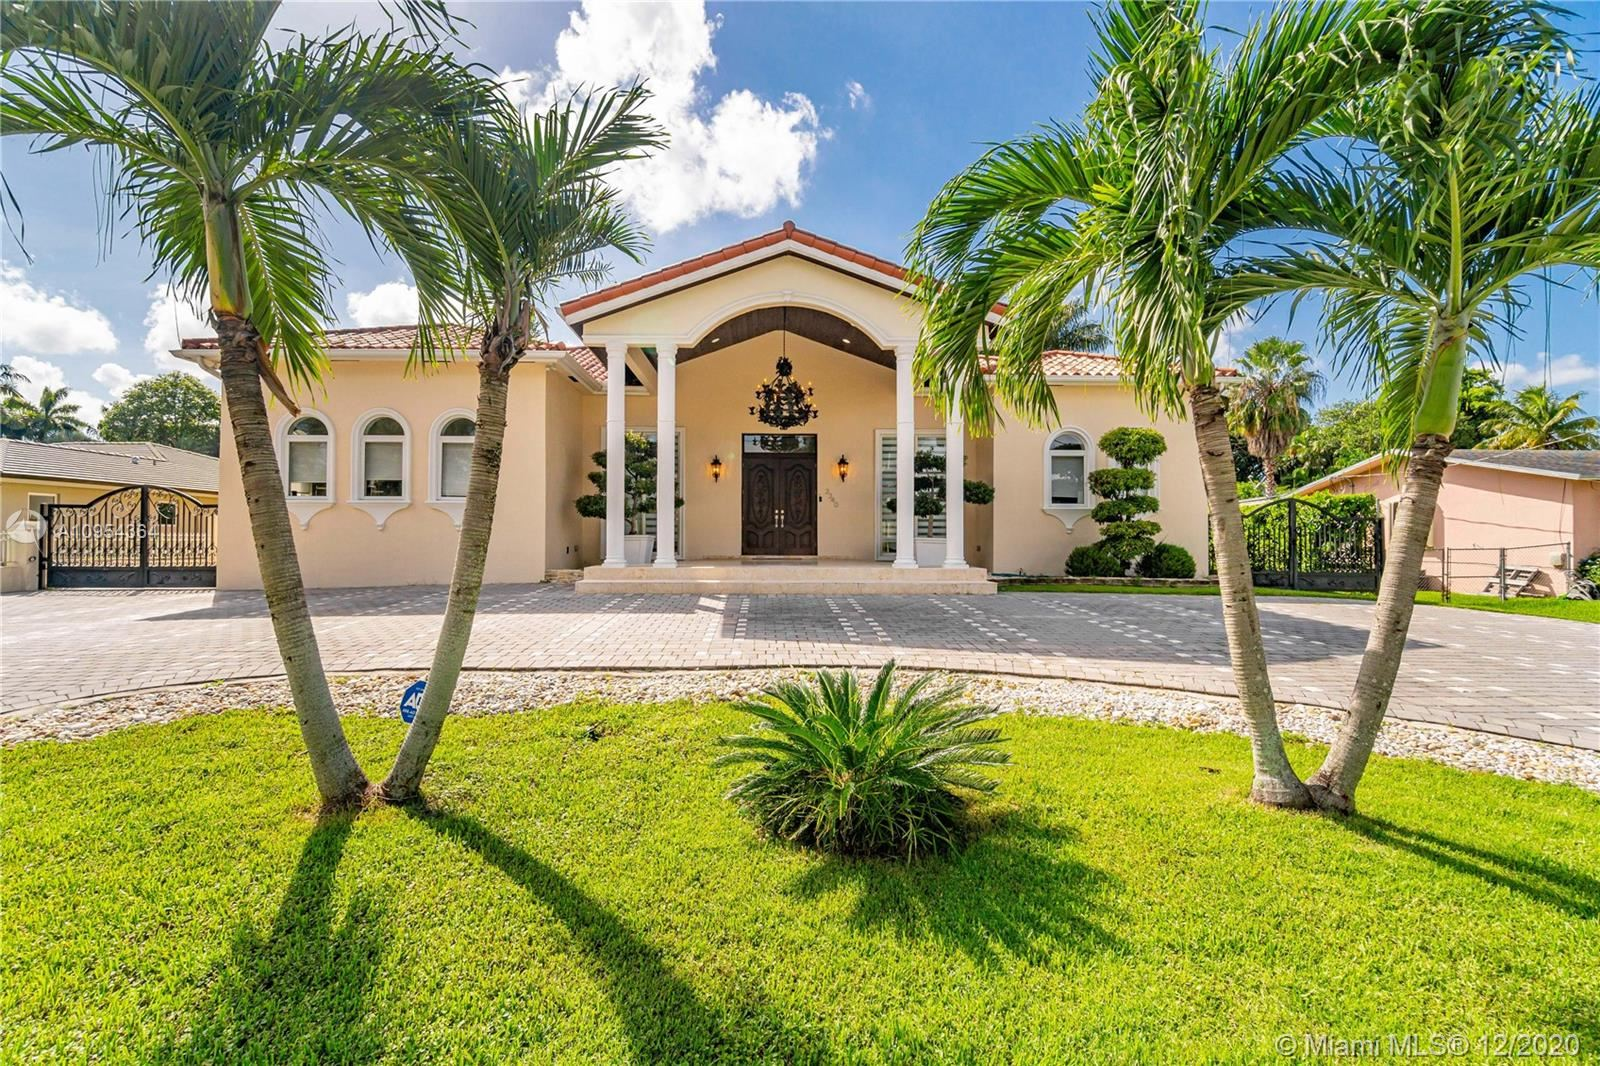 3340 SW 130th Ave, Miami, FL 33175 - #: A10954364